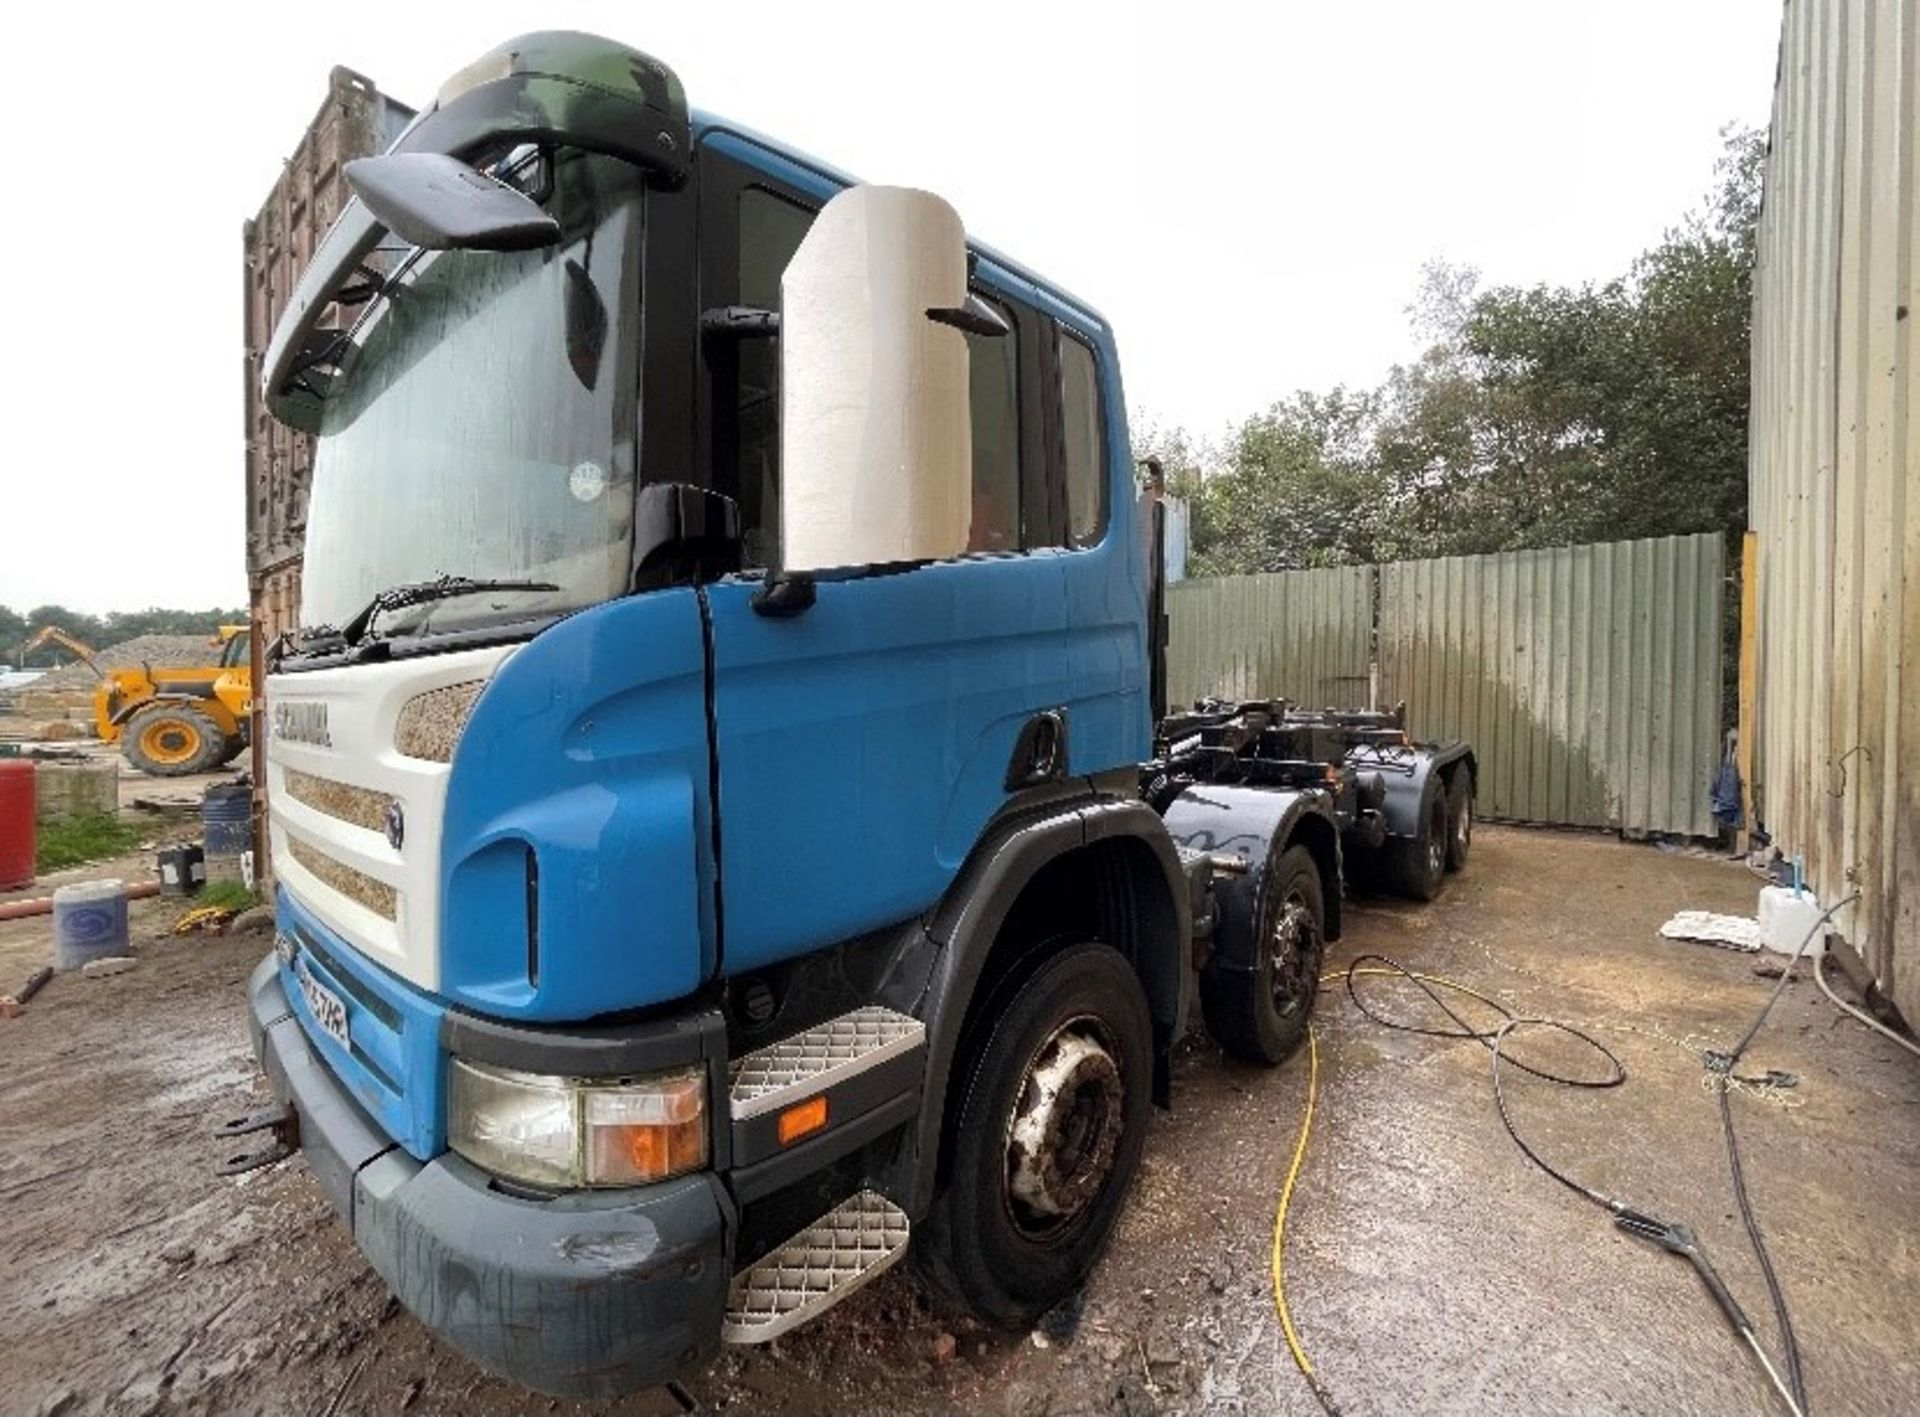 Scania P420 8x4 Hook Lift Truck, registration no. MX55 DND, date first registered 09/2005, indicated - Image 2 of 5